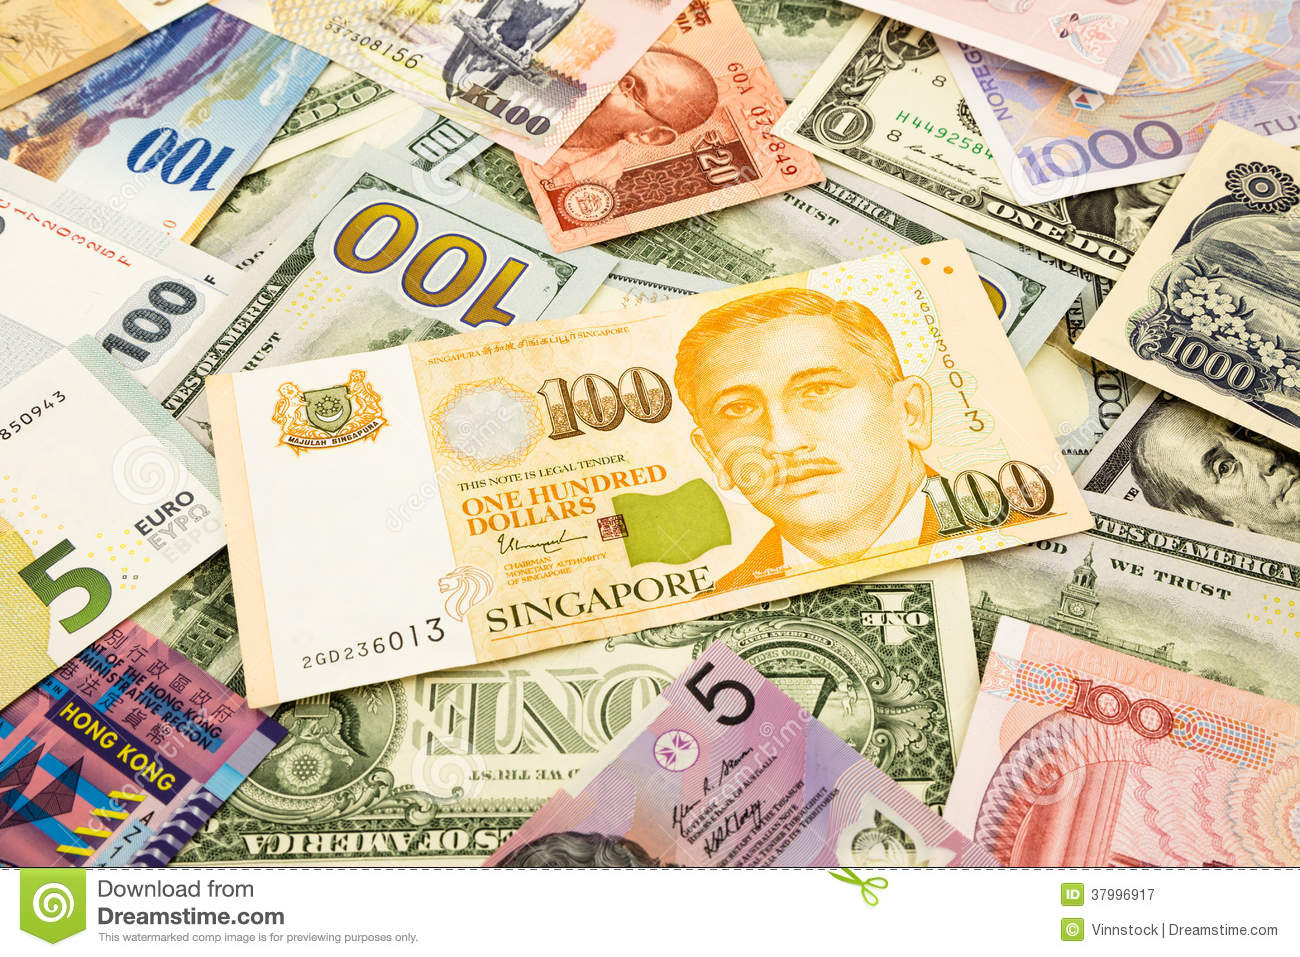 Singapore and world currency money banknote